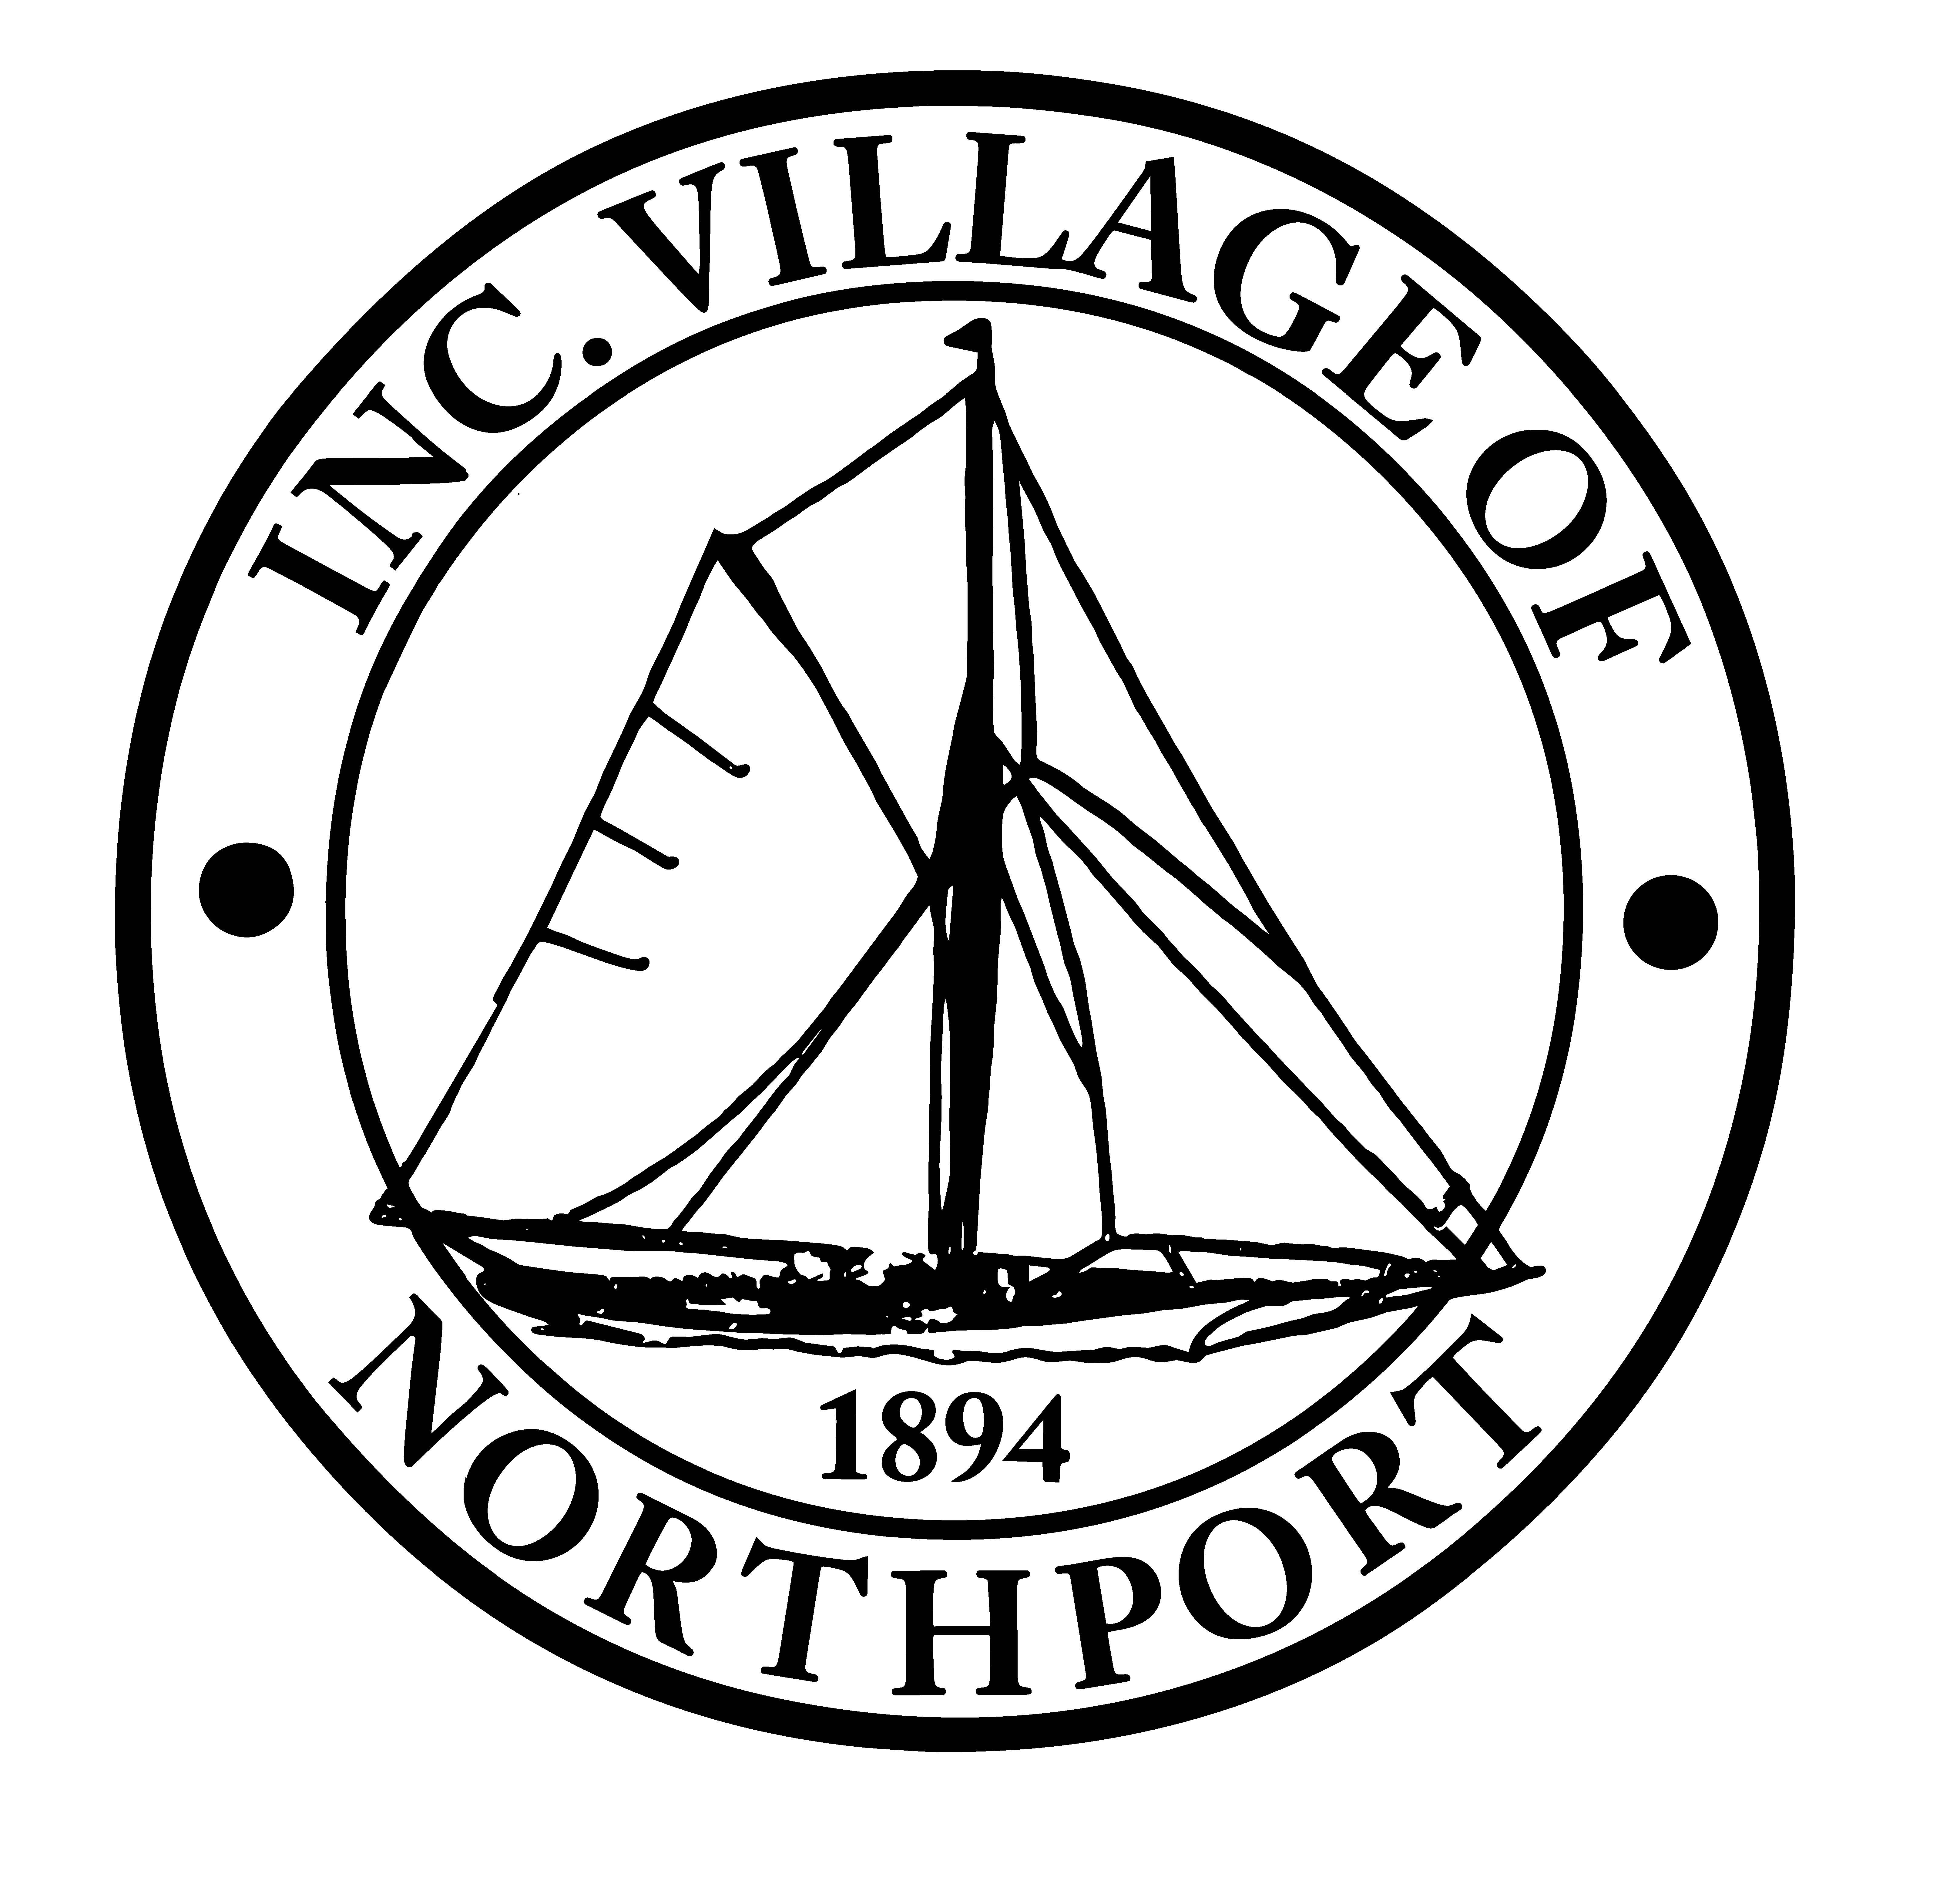 The Official Website for the Village of Northport